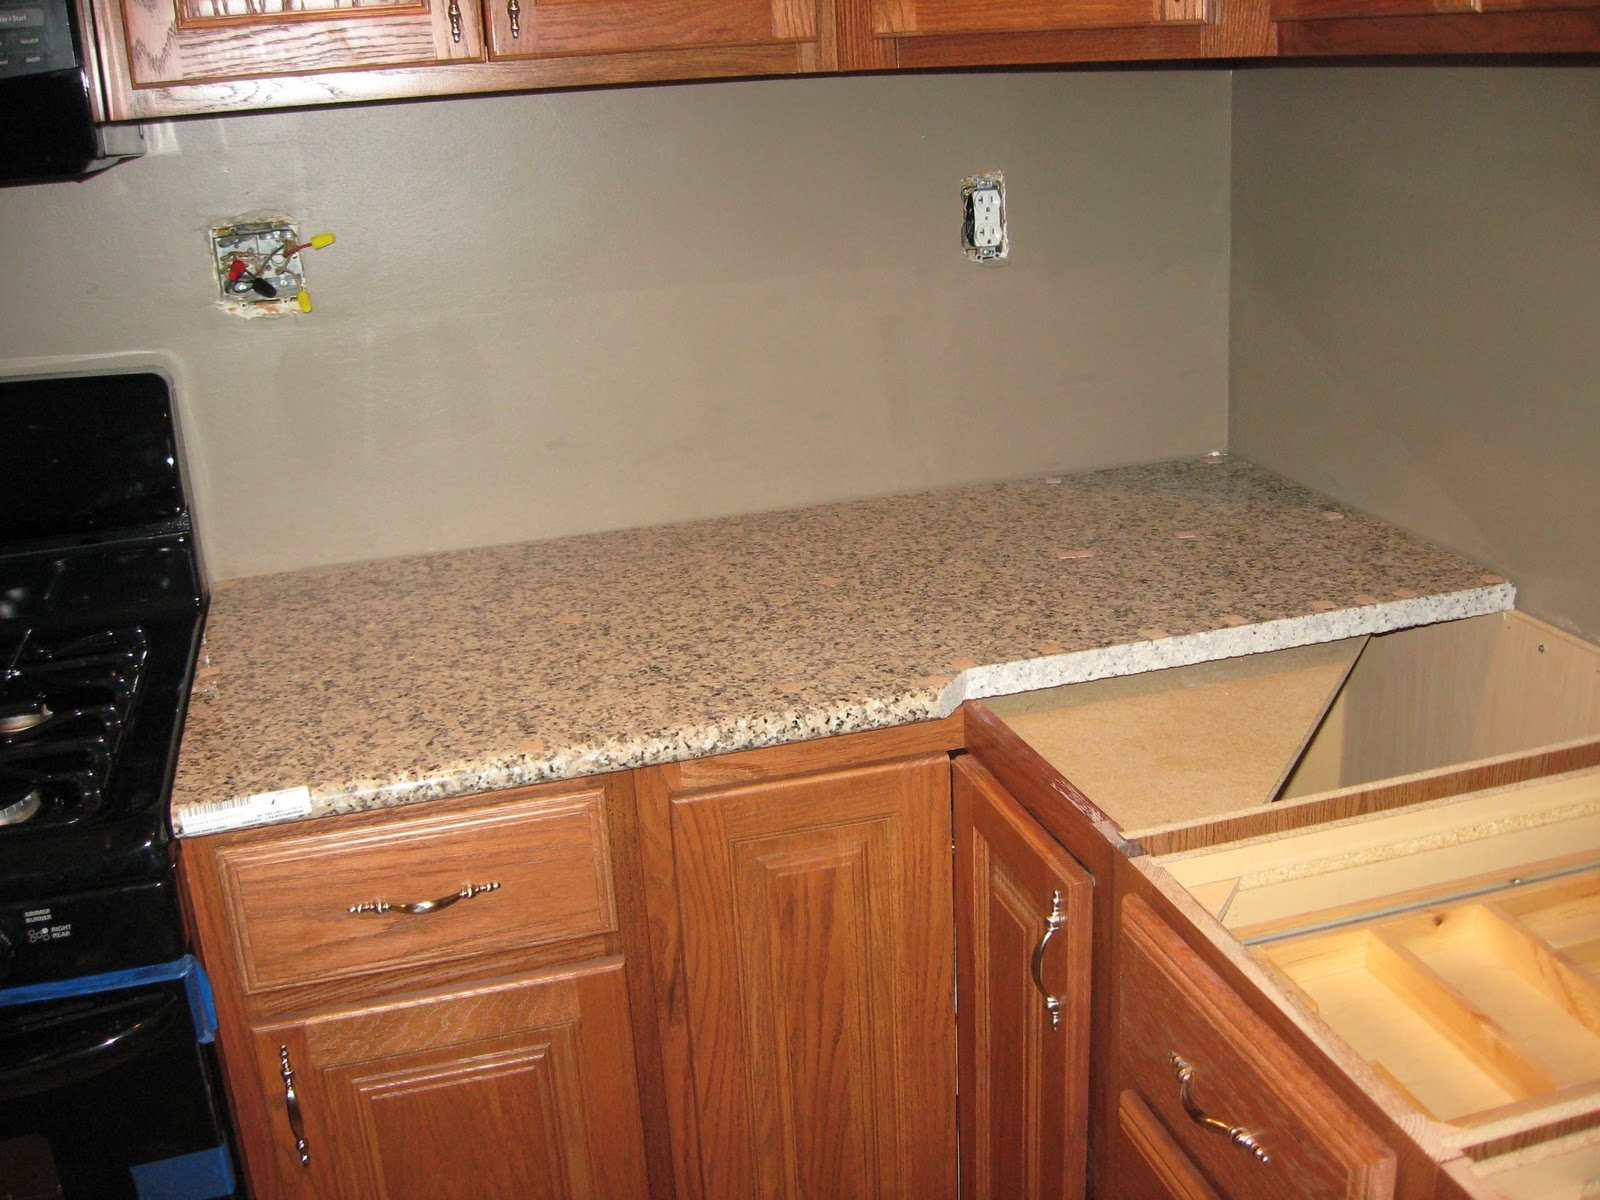 Countertop Installers Near Me : The main countertop area came in two pieces - one short one (above ...